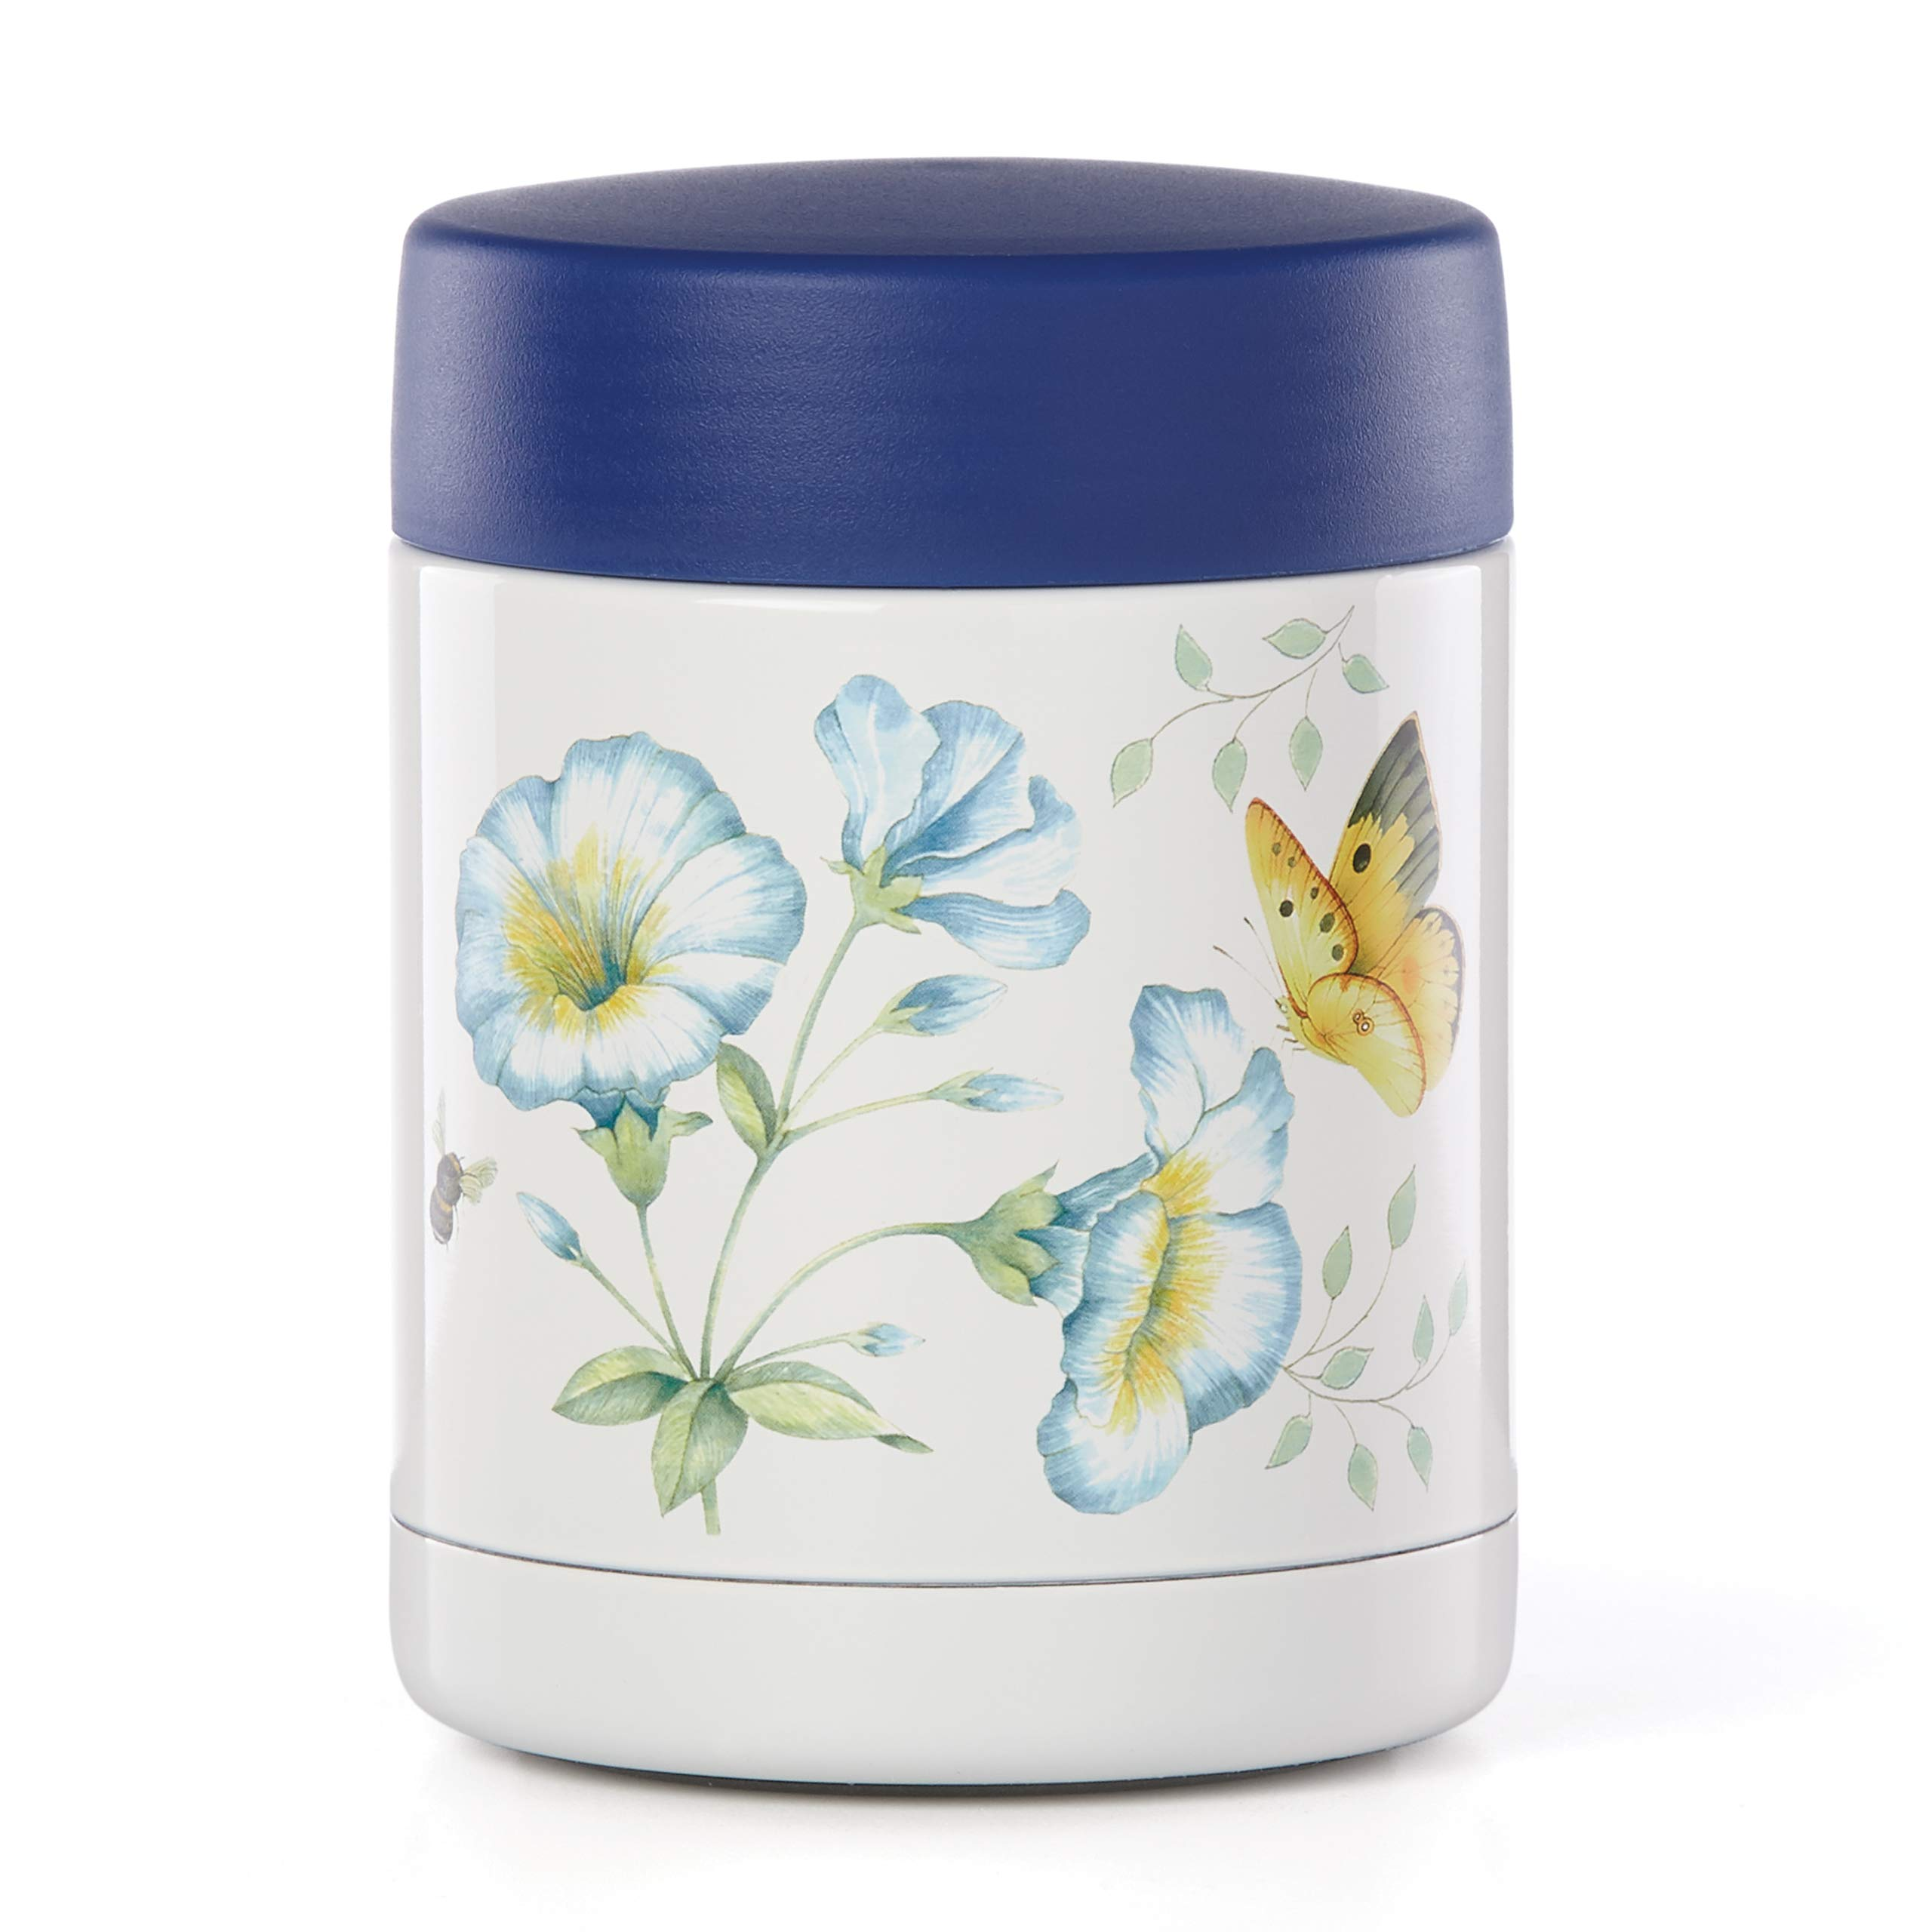 Lenox 888085 Butterfly Meadow Insulated Food Container, Small